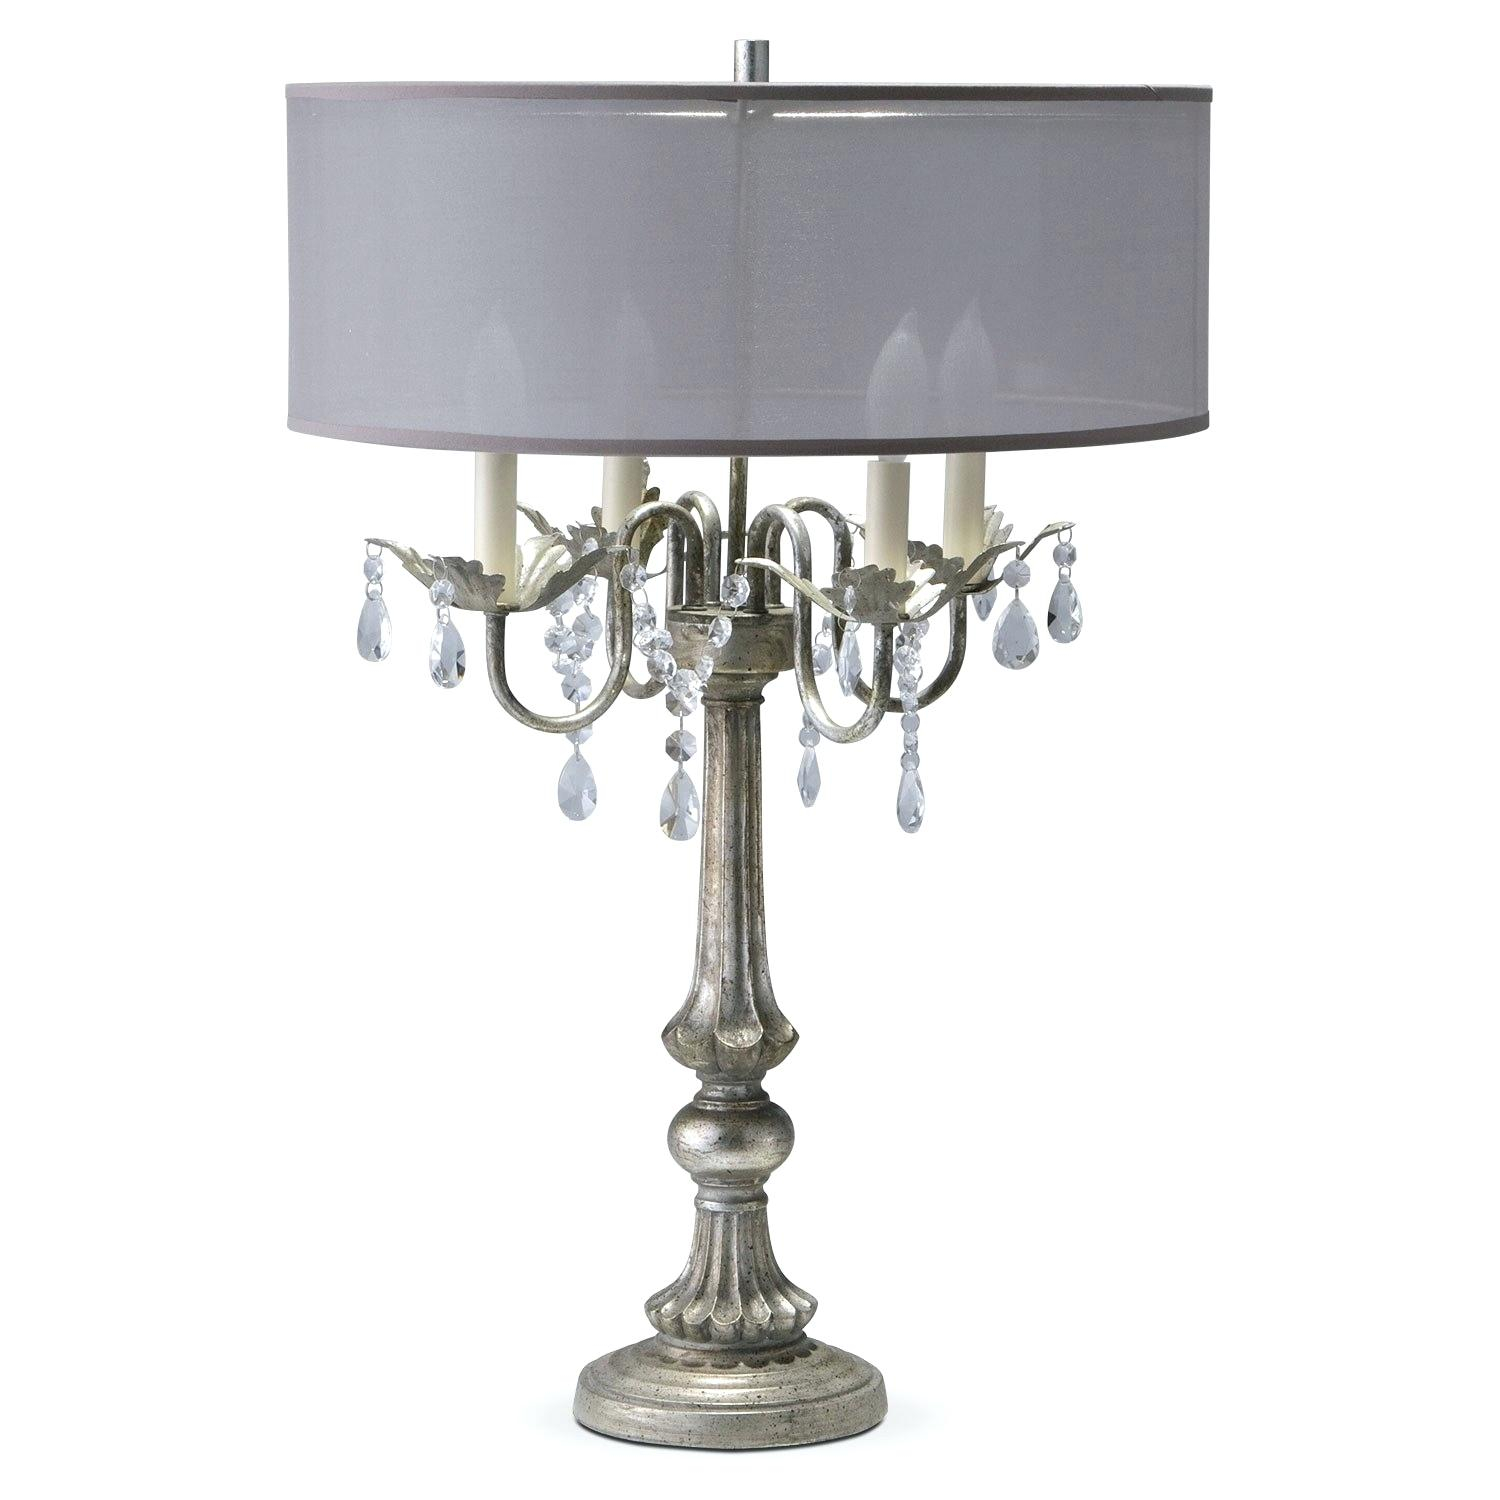 Chandelier Table Lamp Black Uk Bustabitsco in sizing 1500 X 1500